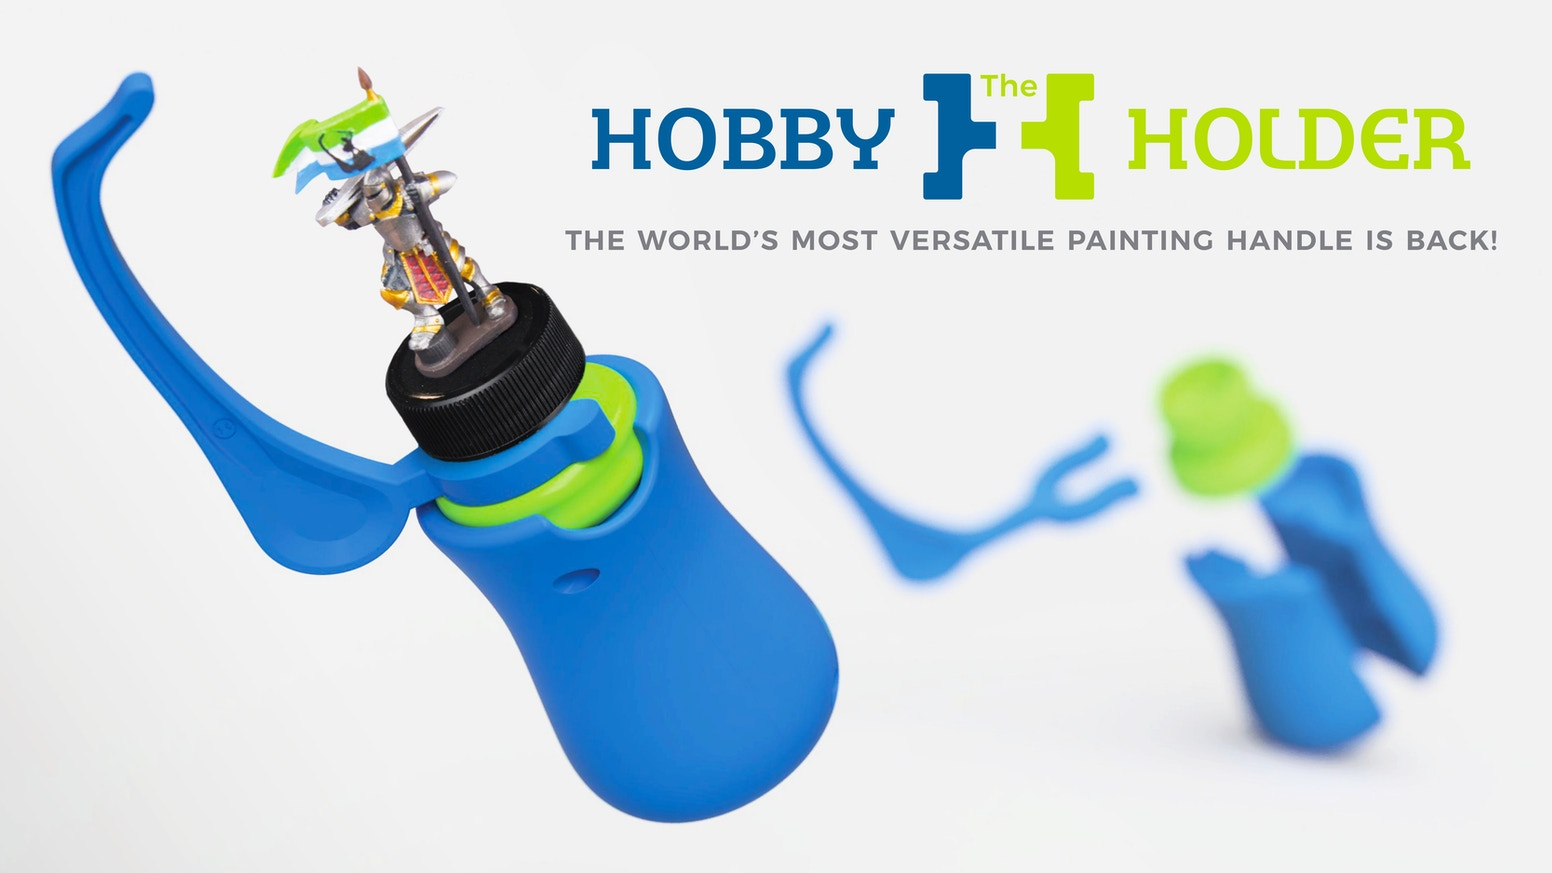 the world's most versatile painting handle and grip returns